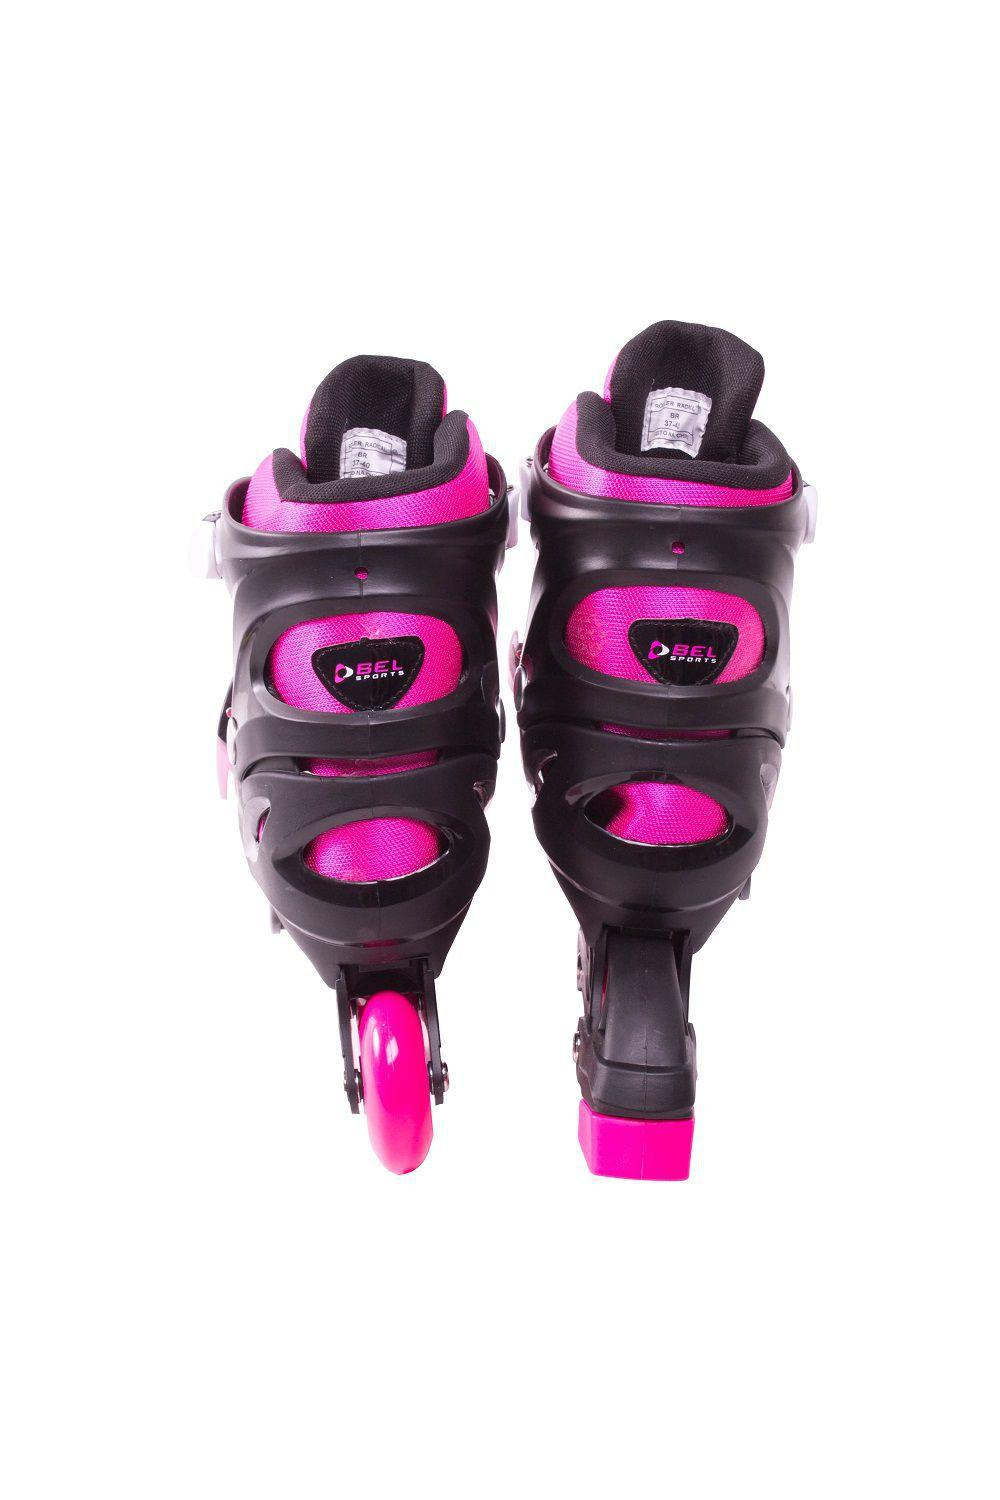 Patins Bel Sports In-Line